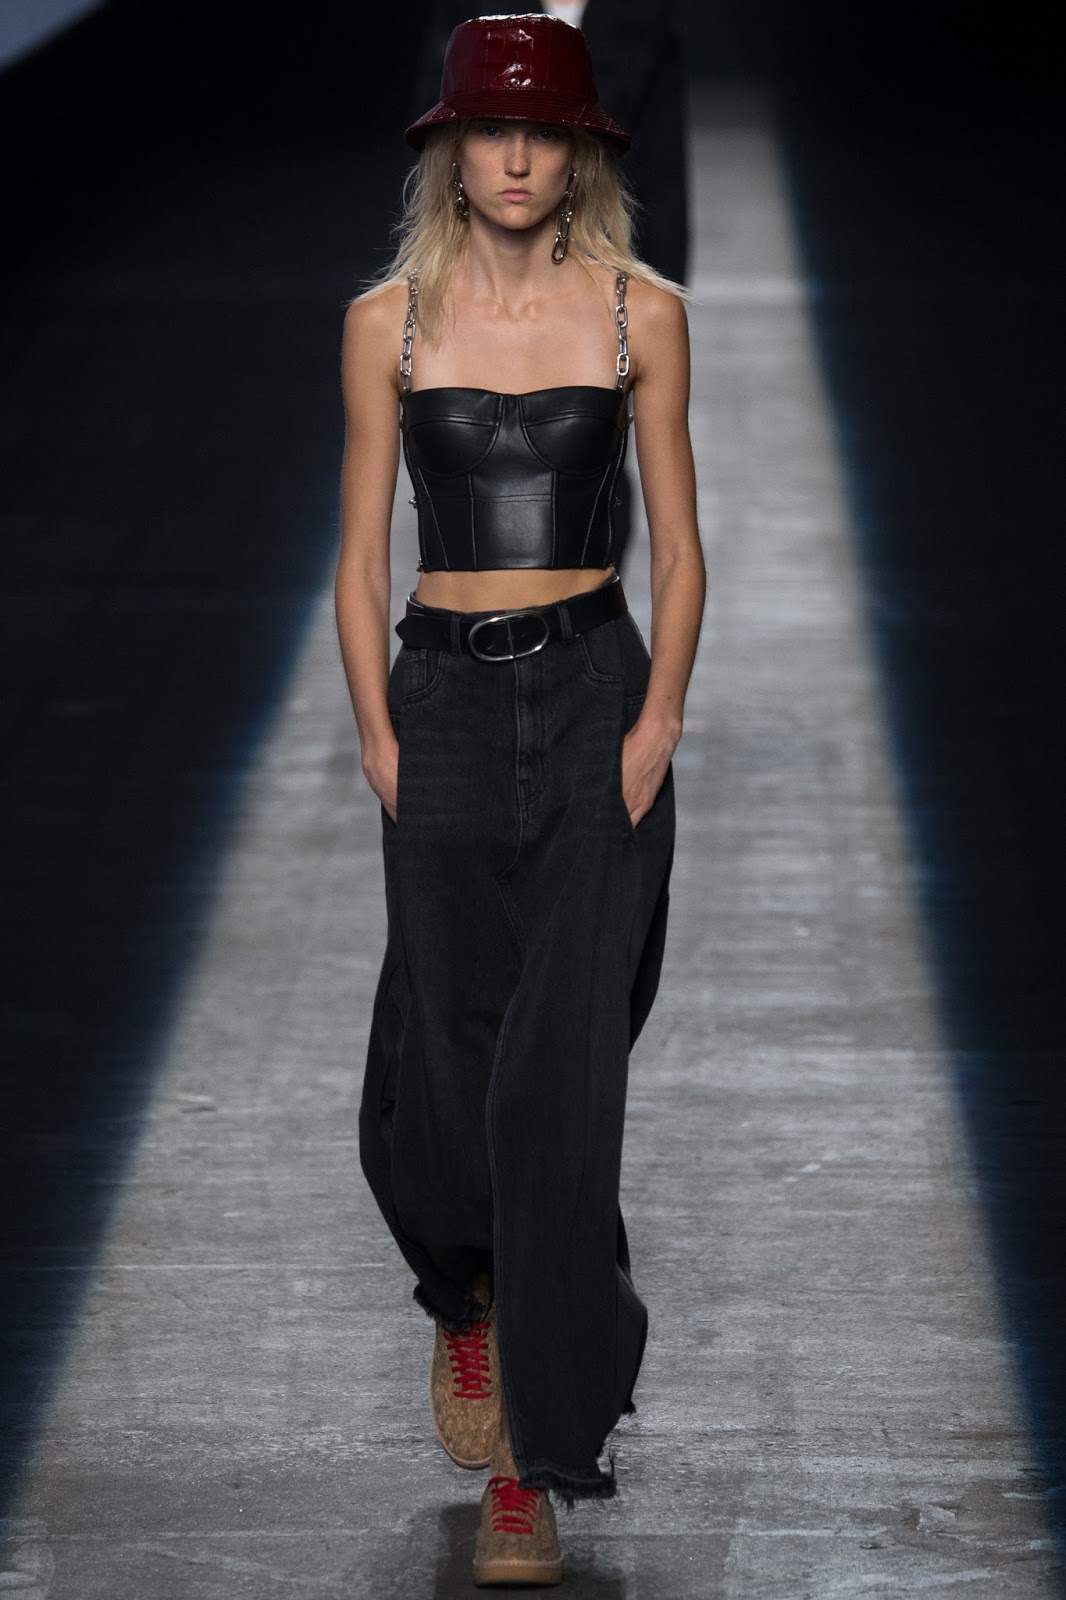 NYFW, new york fashion week, bucket hat chain link leather bustier